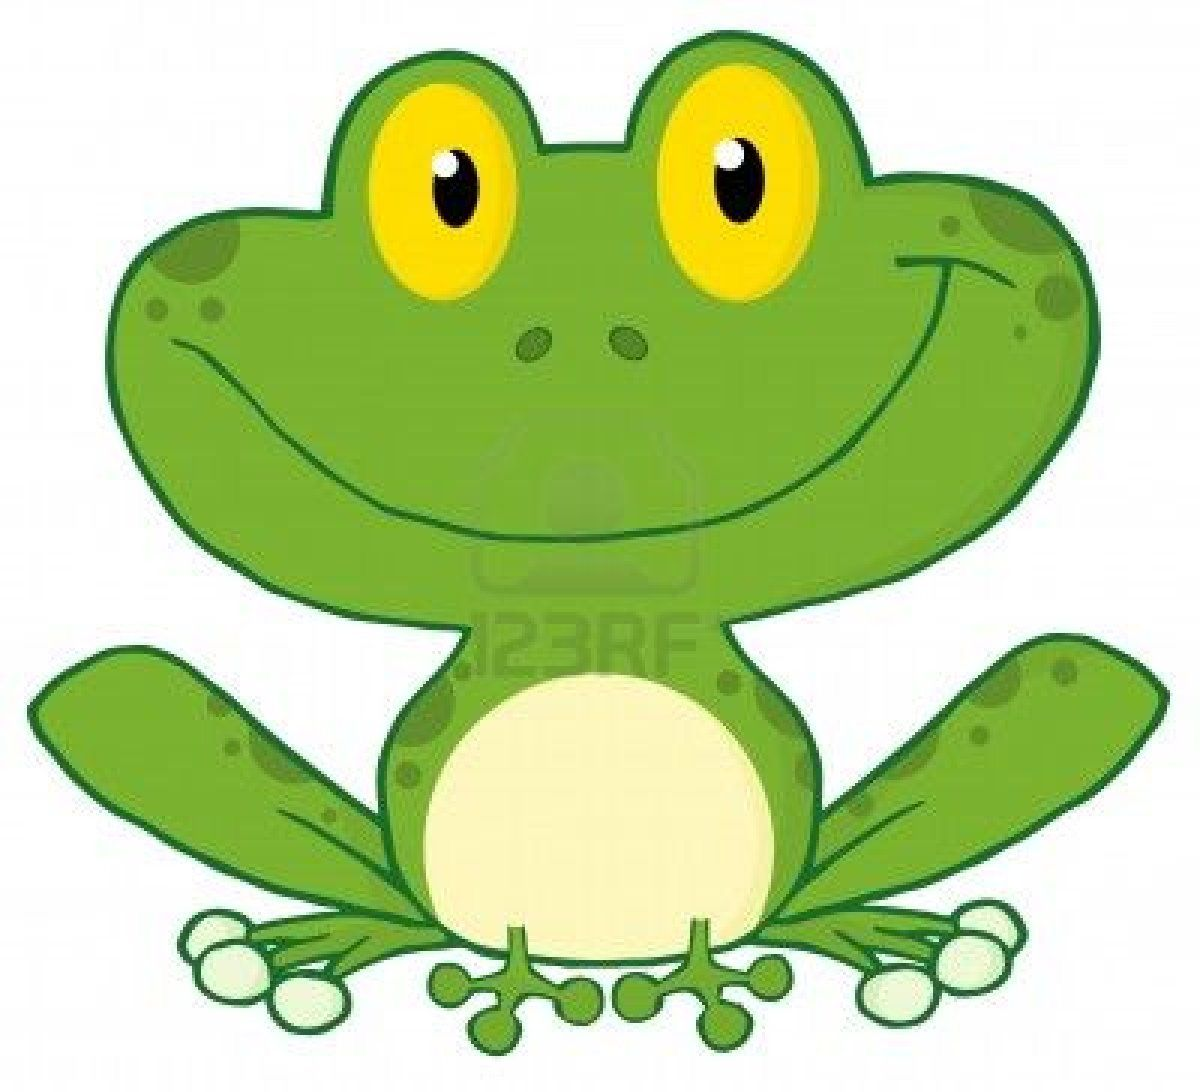 Frog Clipart Image Cute Green Cartoon Frog Happy As Can Be Frog Illustration Frog Art Cute Frogs